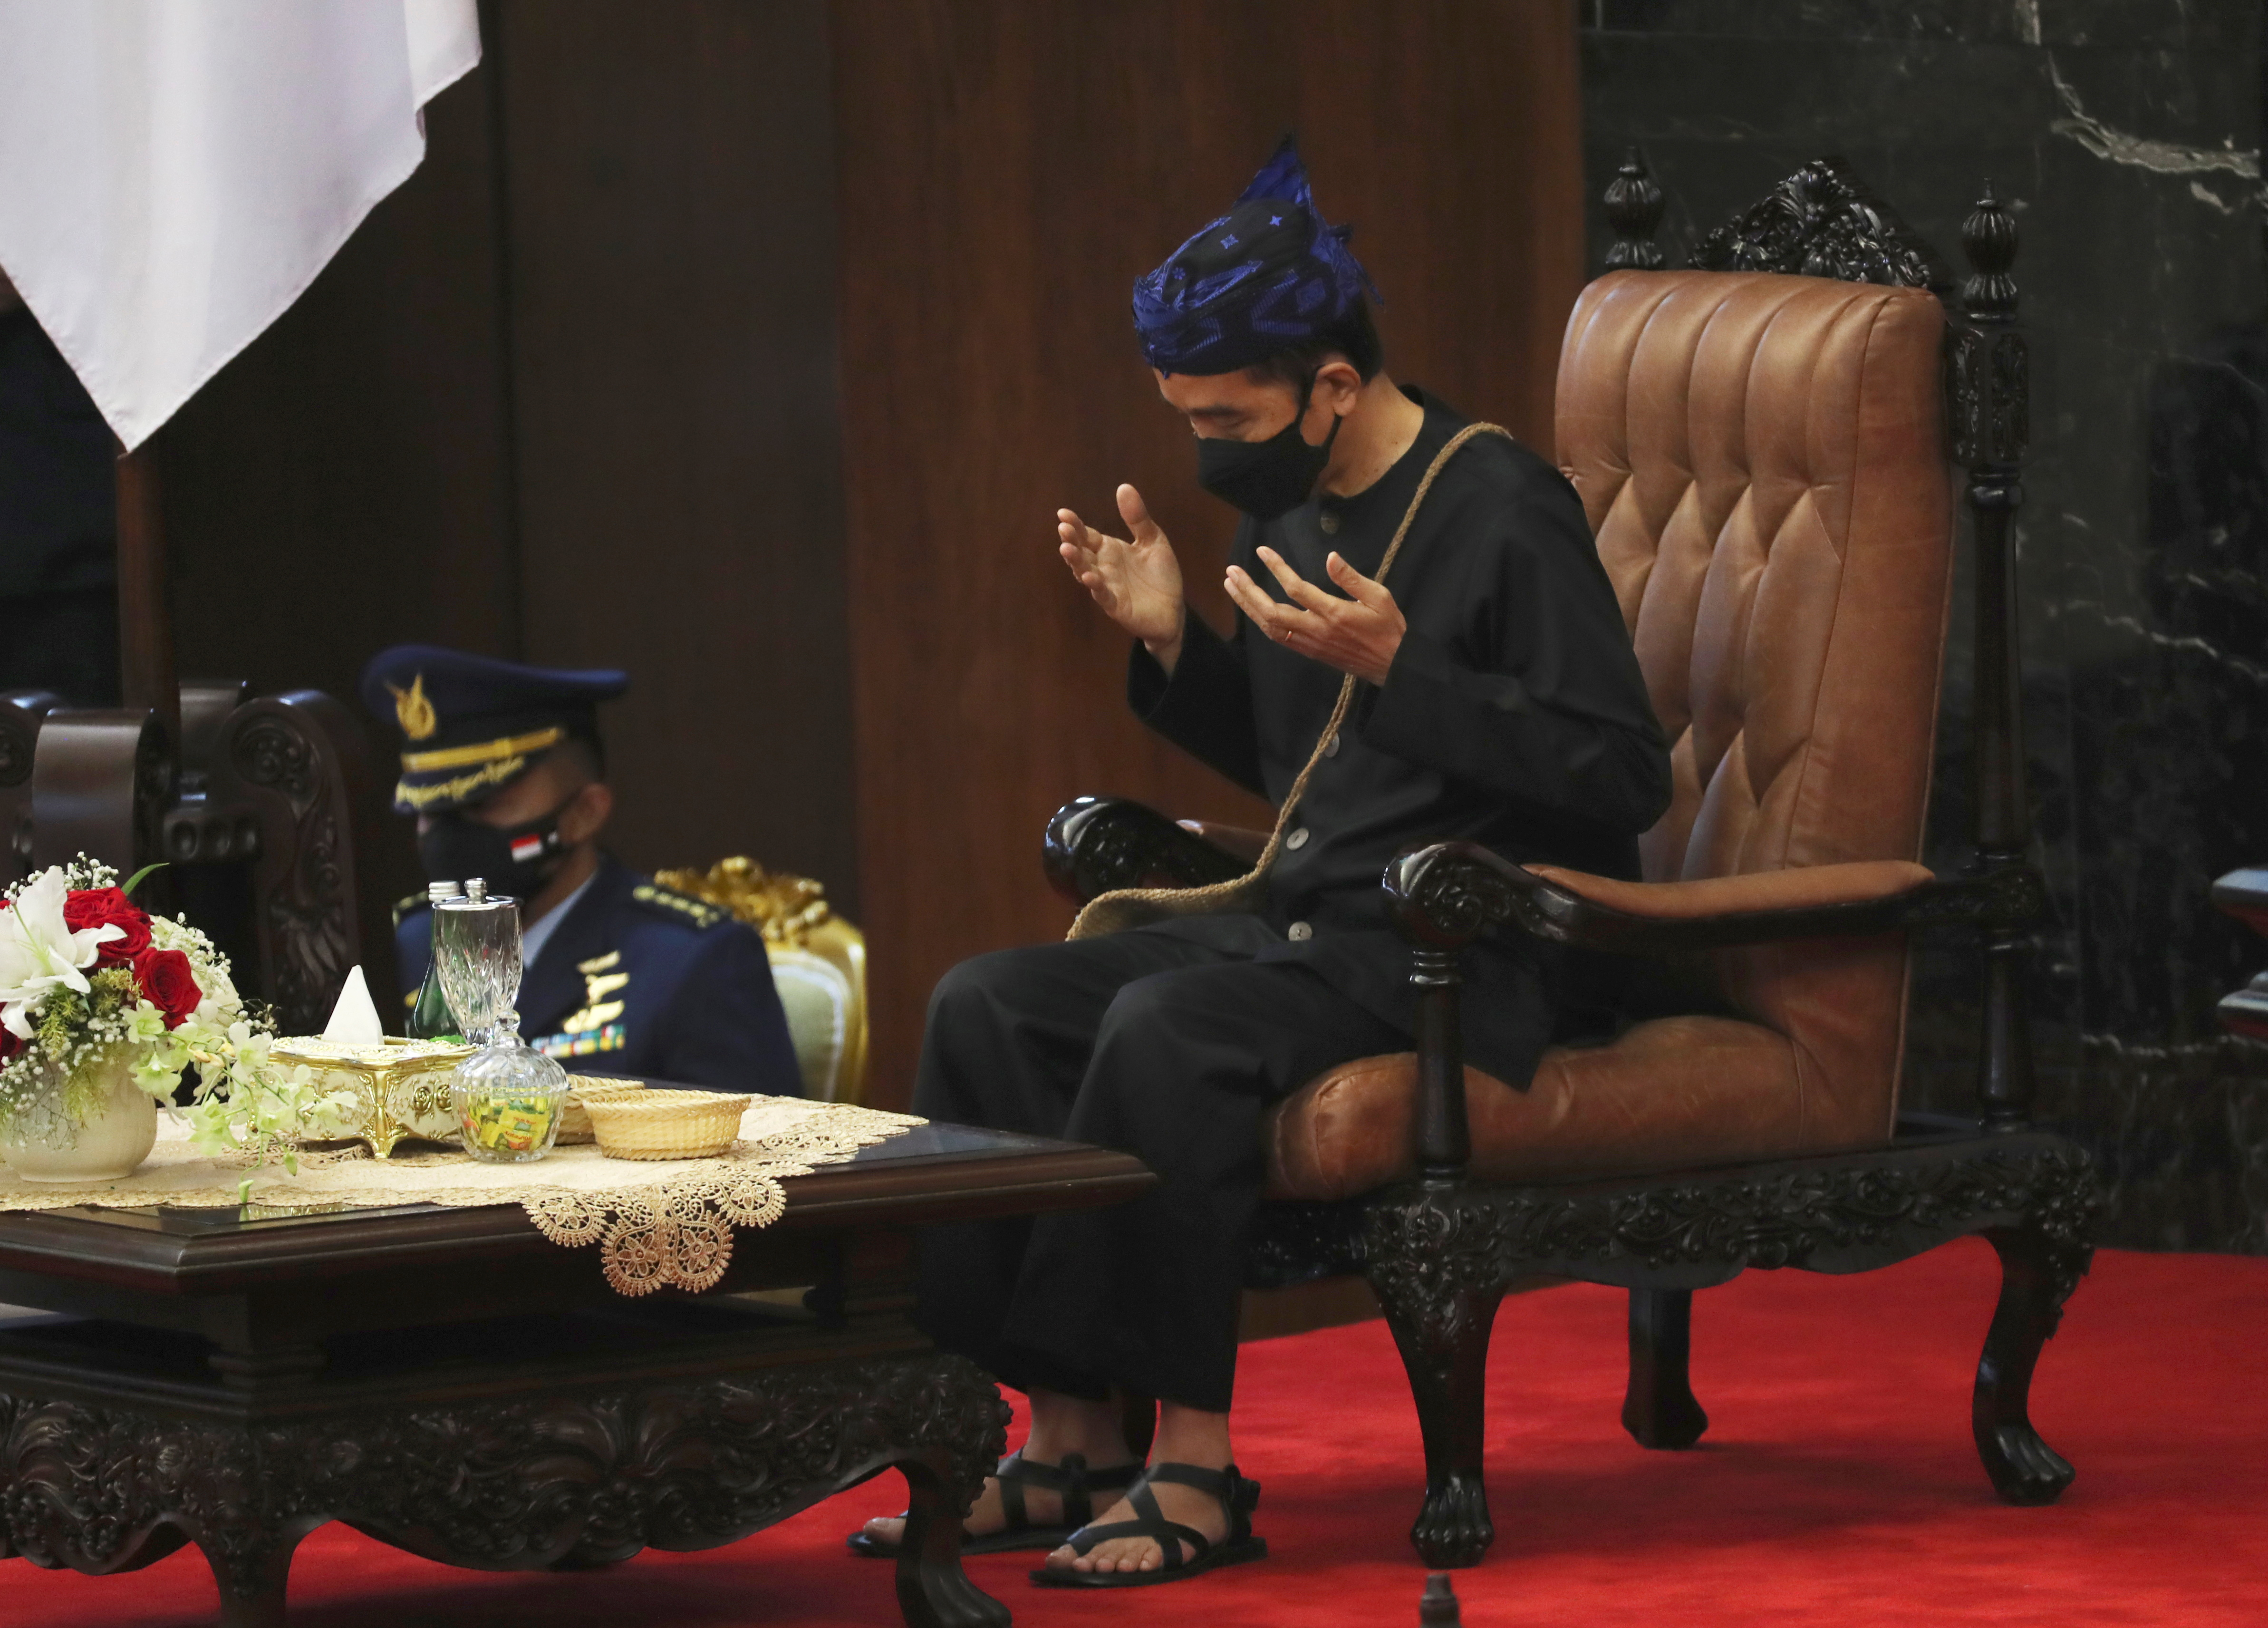 Indonesian President Joko Widodo, wearing a traditional Baduy outfit, prays after delivering his State of the annual Nation Address ahead of the country's Independence Day, at the parliament building in Jakarta, Indonesia, August 16, 2021. Achmad Ibrahim/Pool via REUTERS